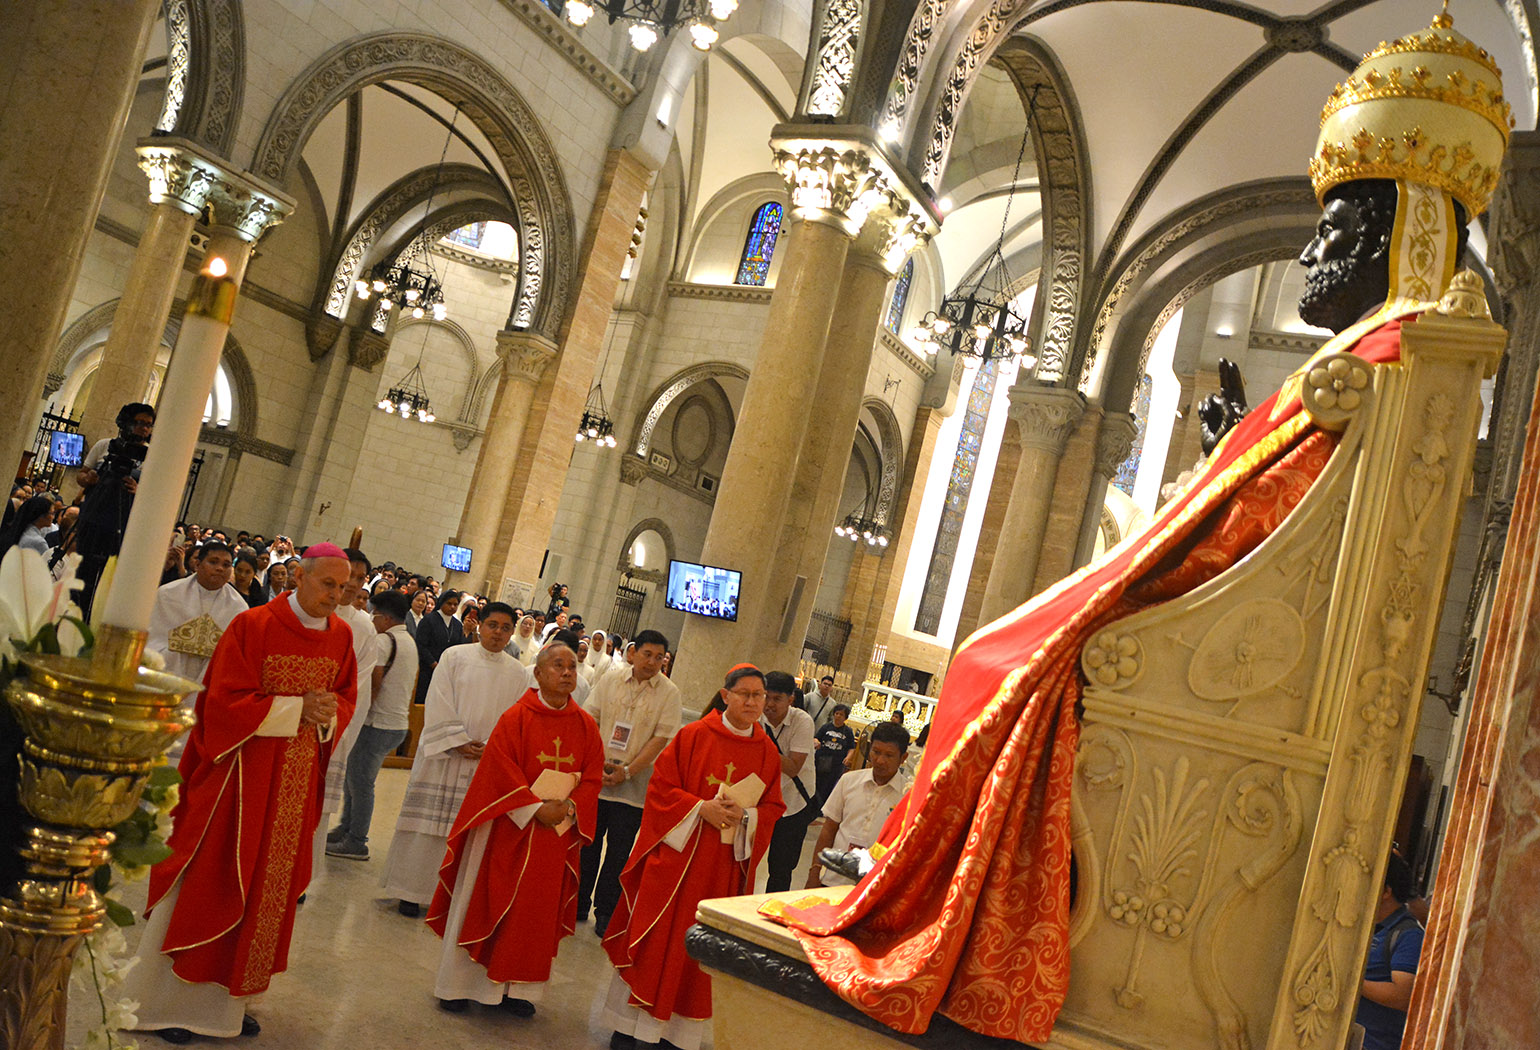 Cardinal Tagle Urges Openness to God - ZENIT - English